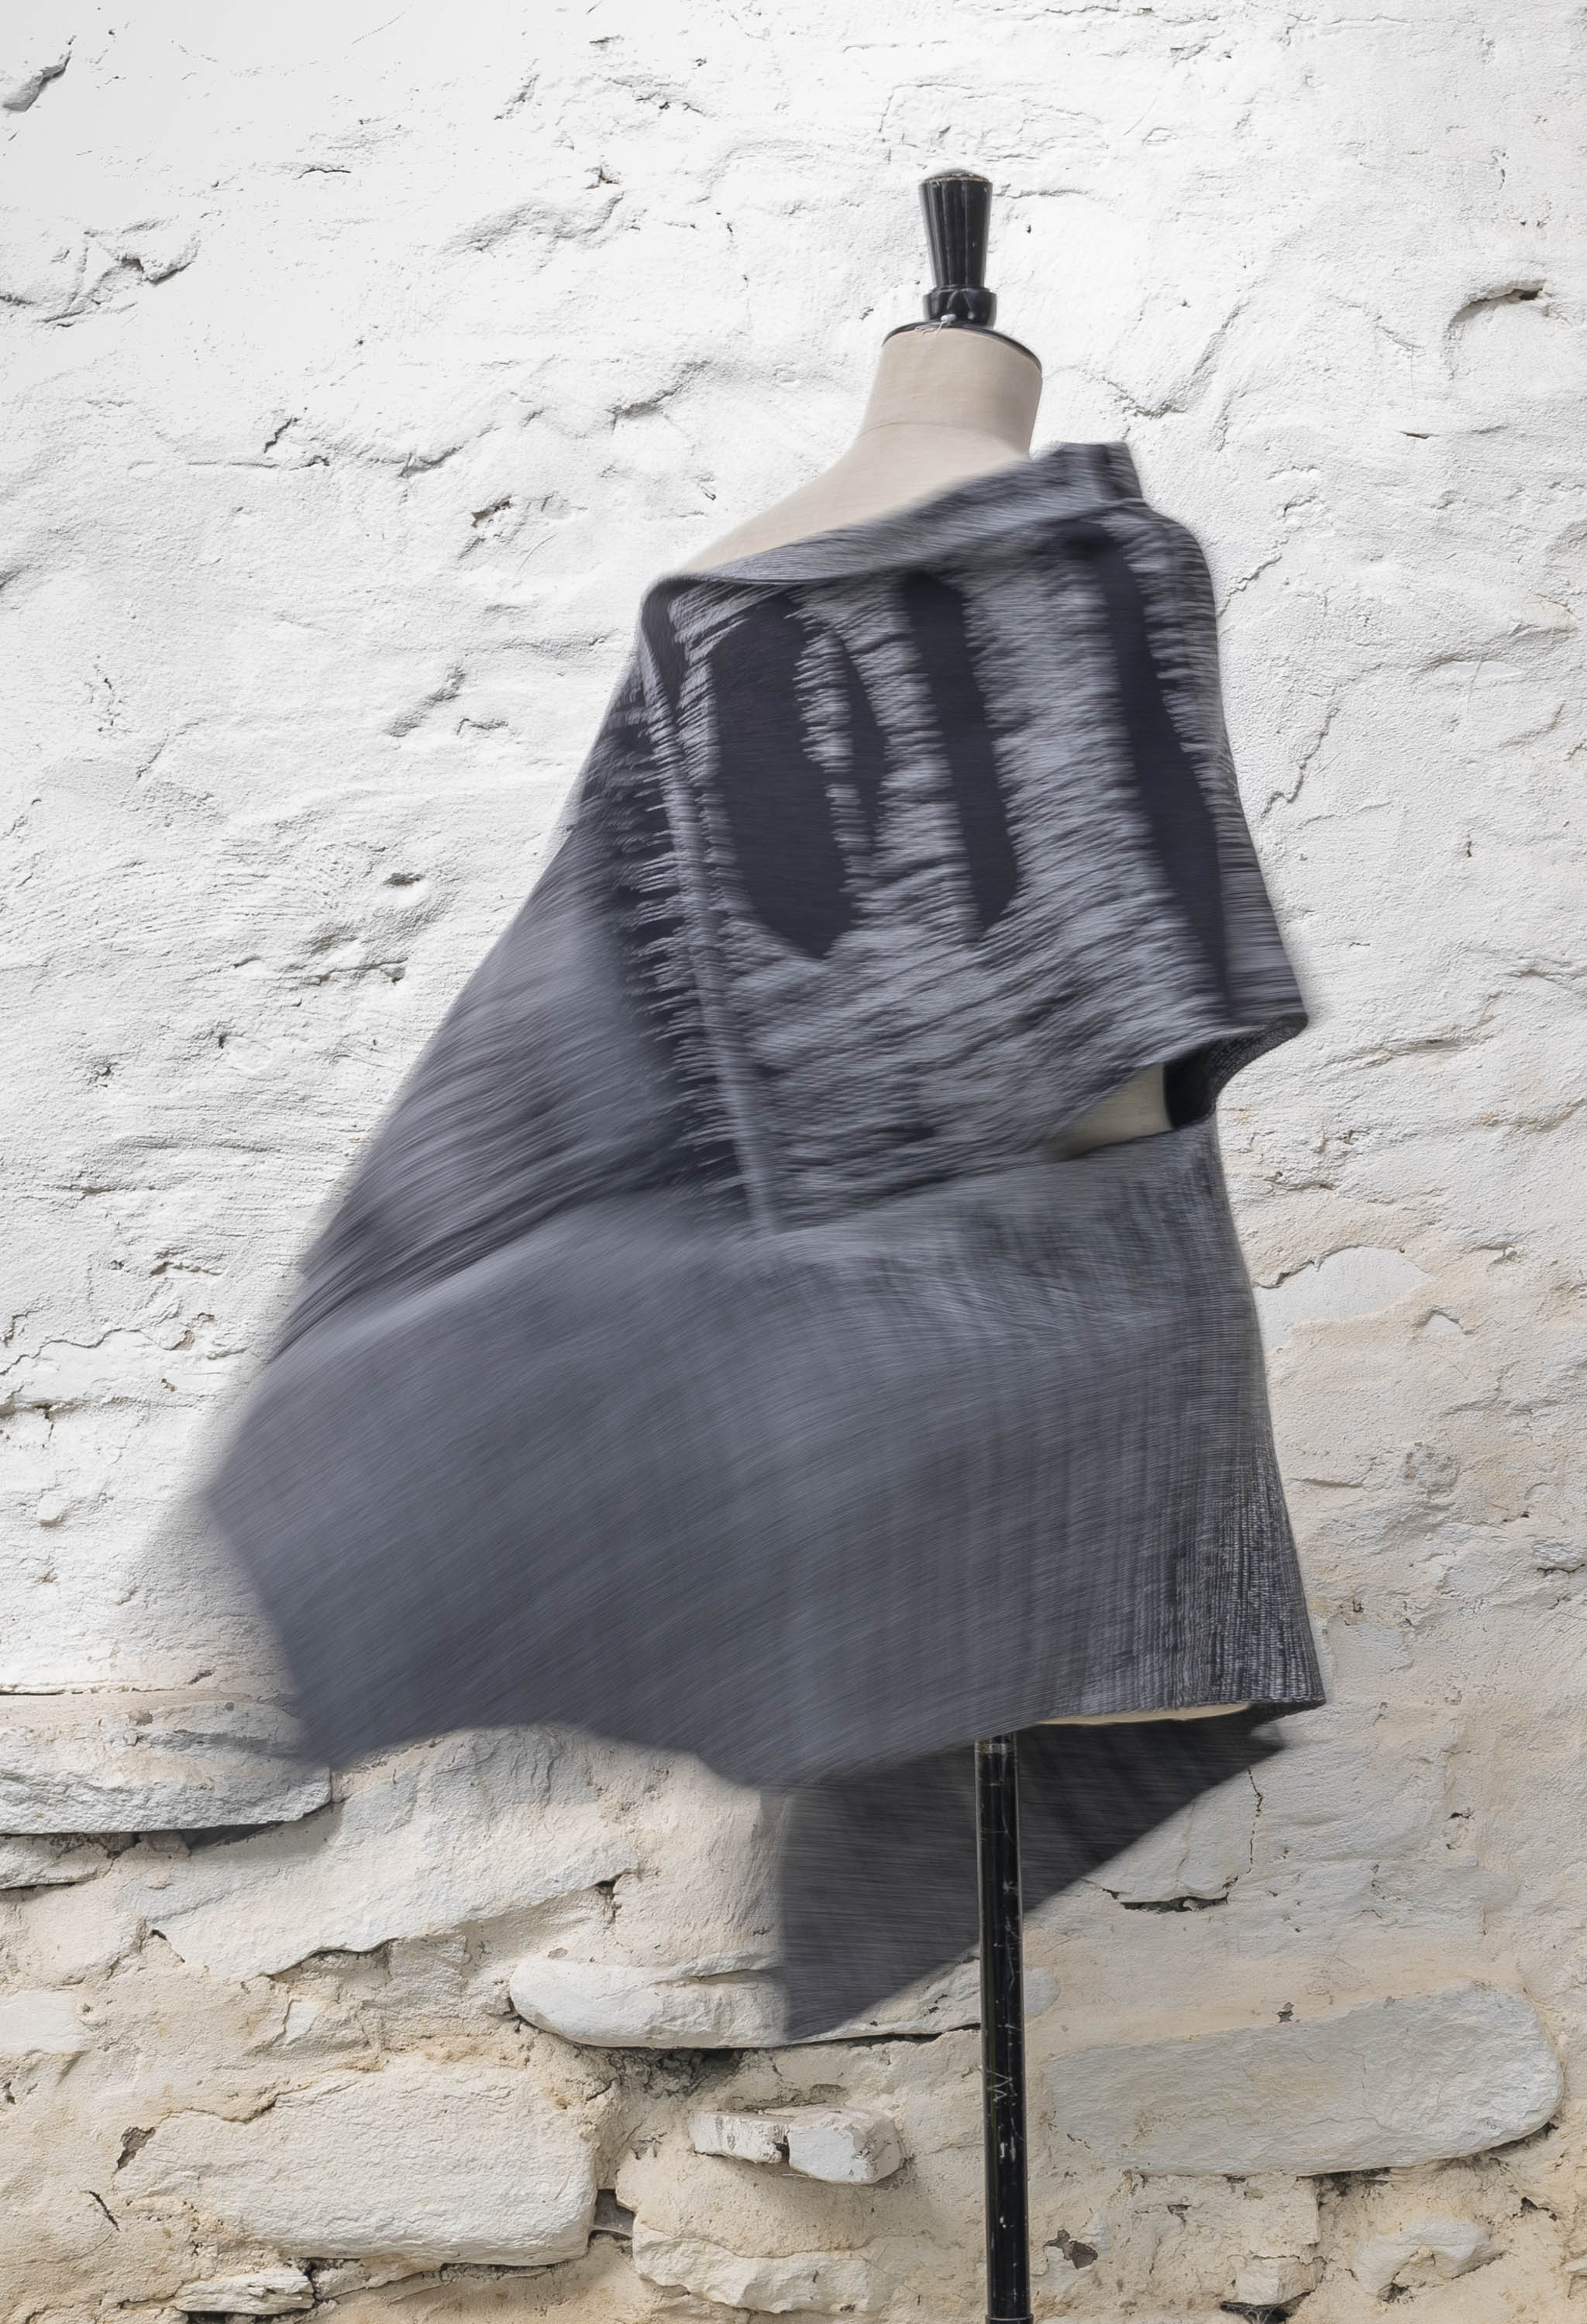 Inklines cape in greys, with abstract linear patterning